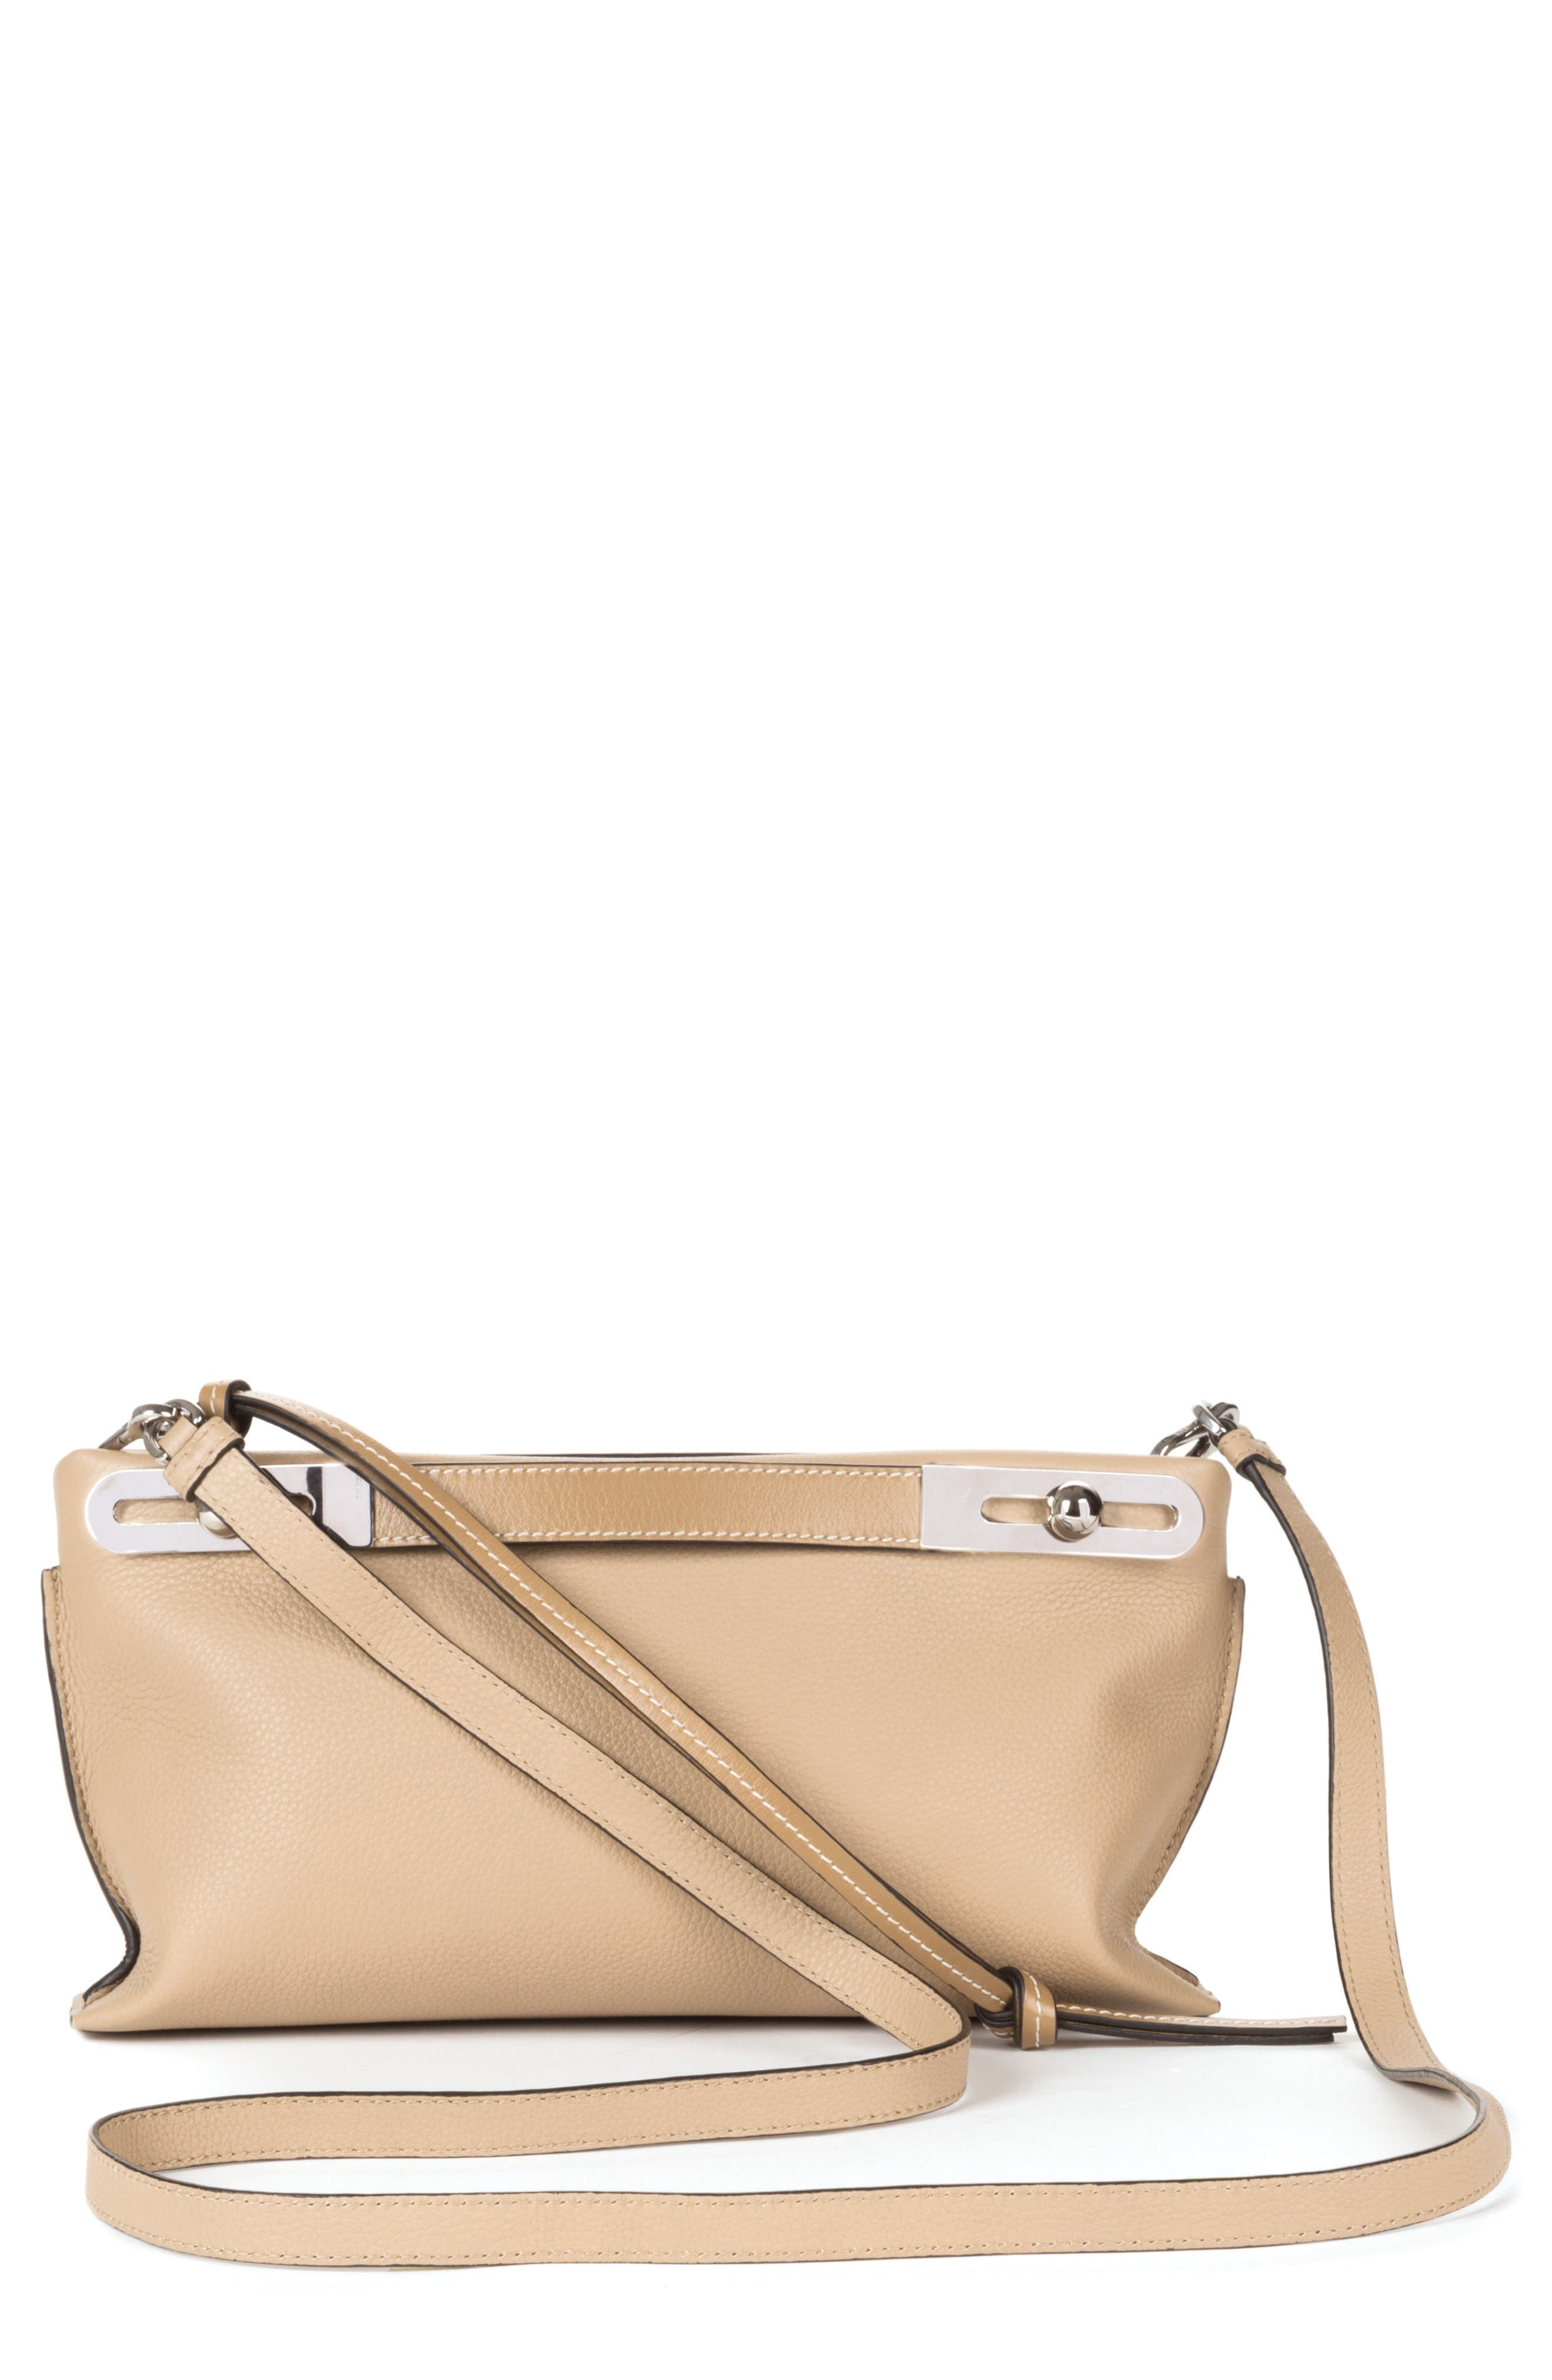 Small Missy Leather Crossbody Bag,                             Main thumbnail 1, color,                             Sand/ Mink